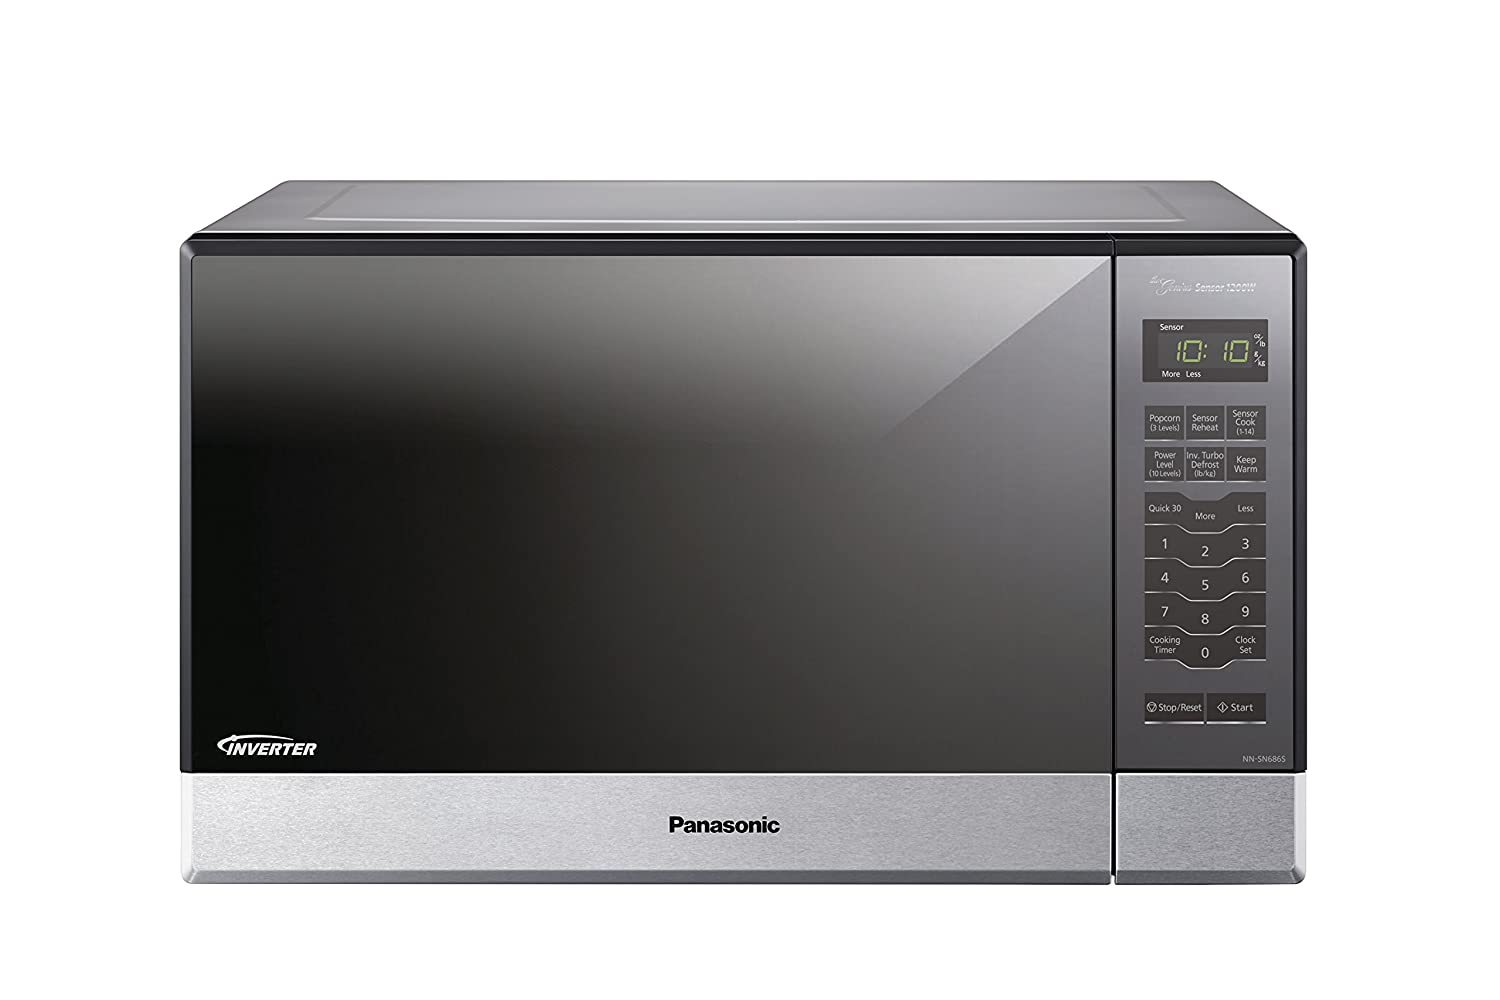 Panasonic Countertop/Built-In Microwave with Inverter Technology, 1.2 cu. ft. , 1200W, Stainless